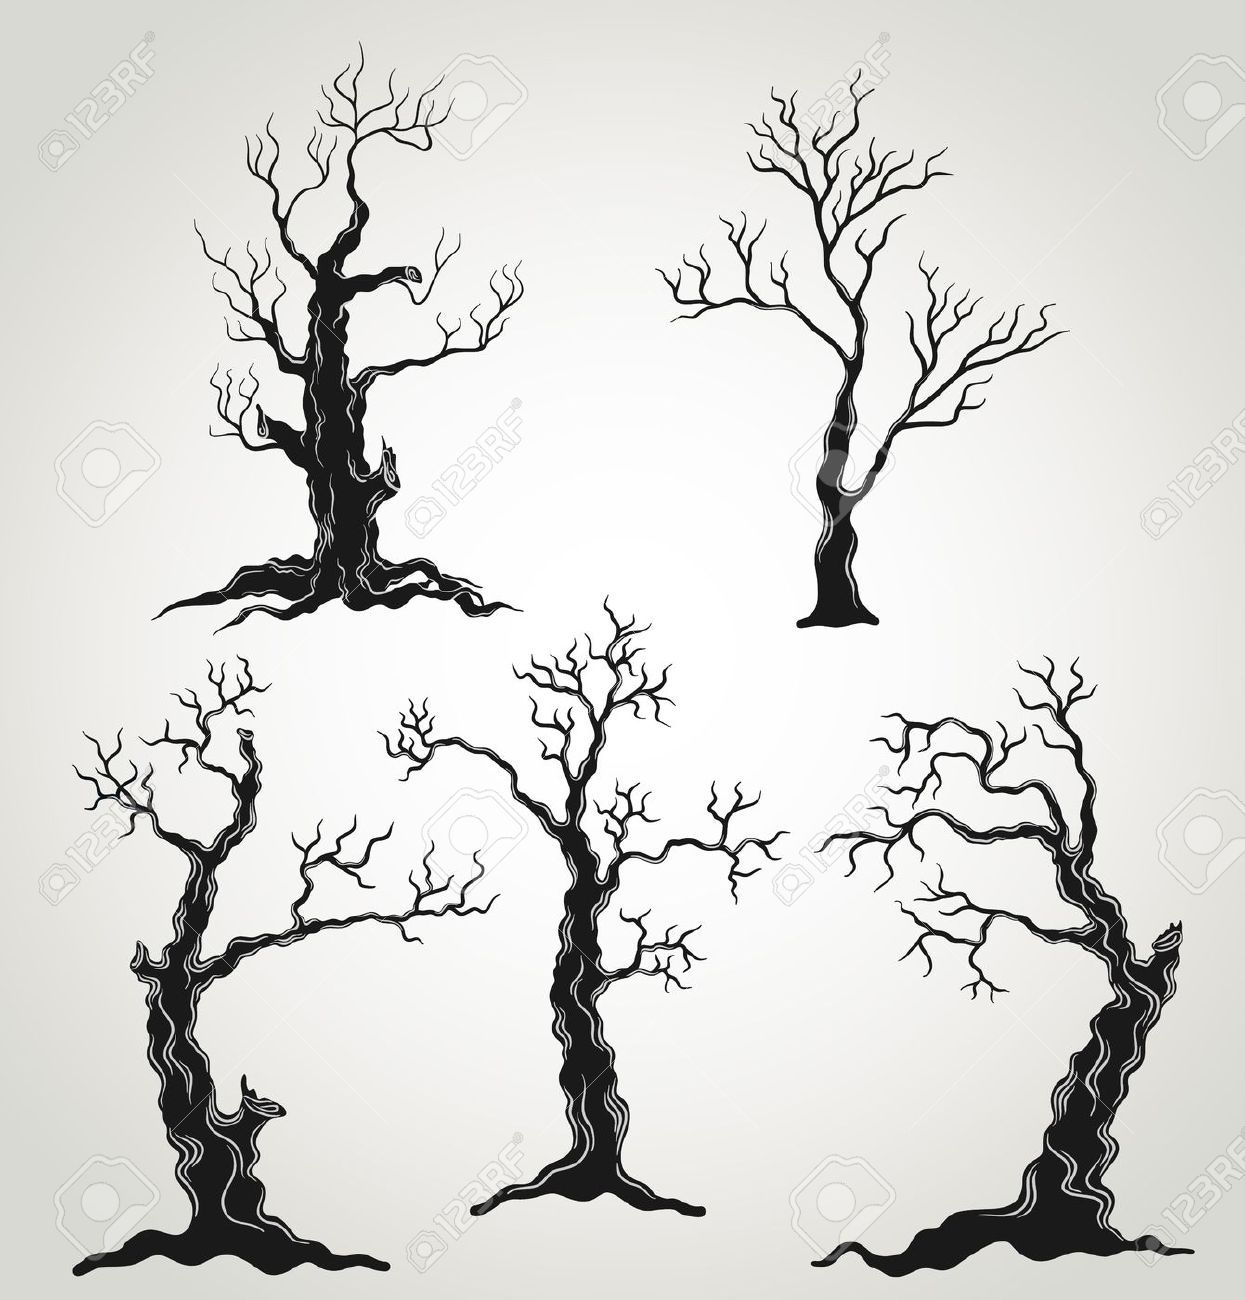 Spooky Tree Stock Vector Illustration And Royalty Free ...